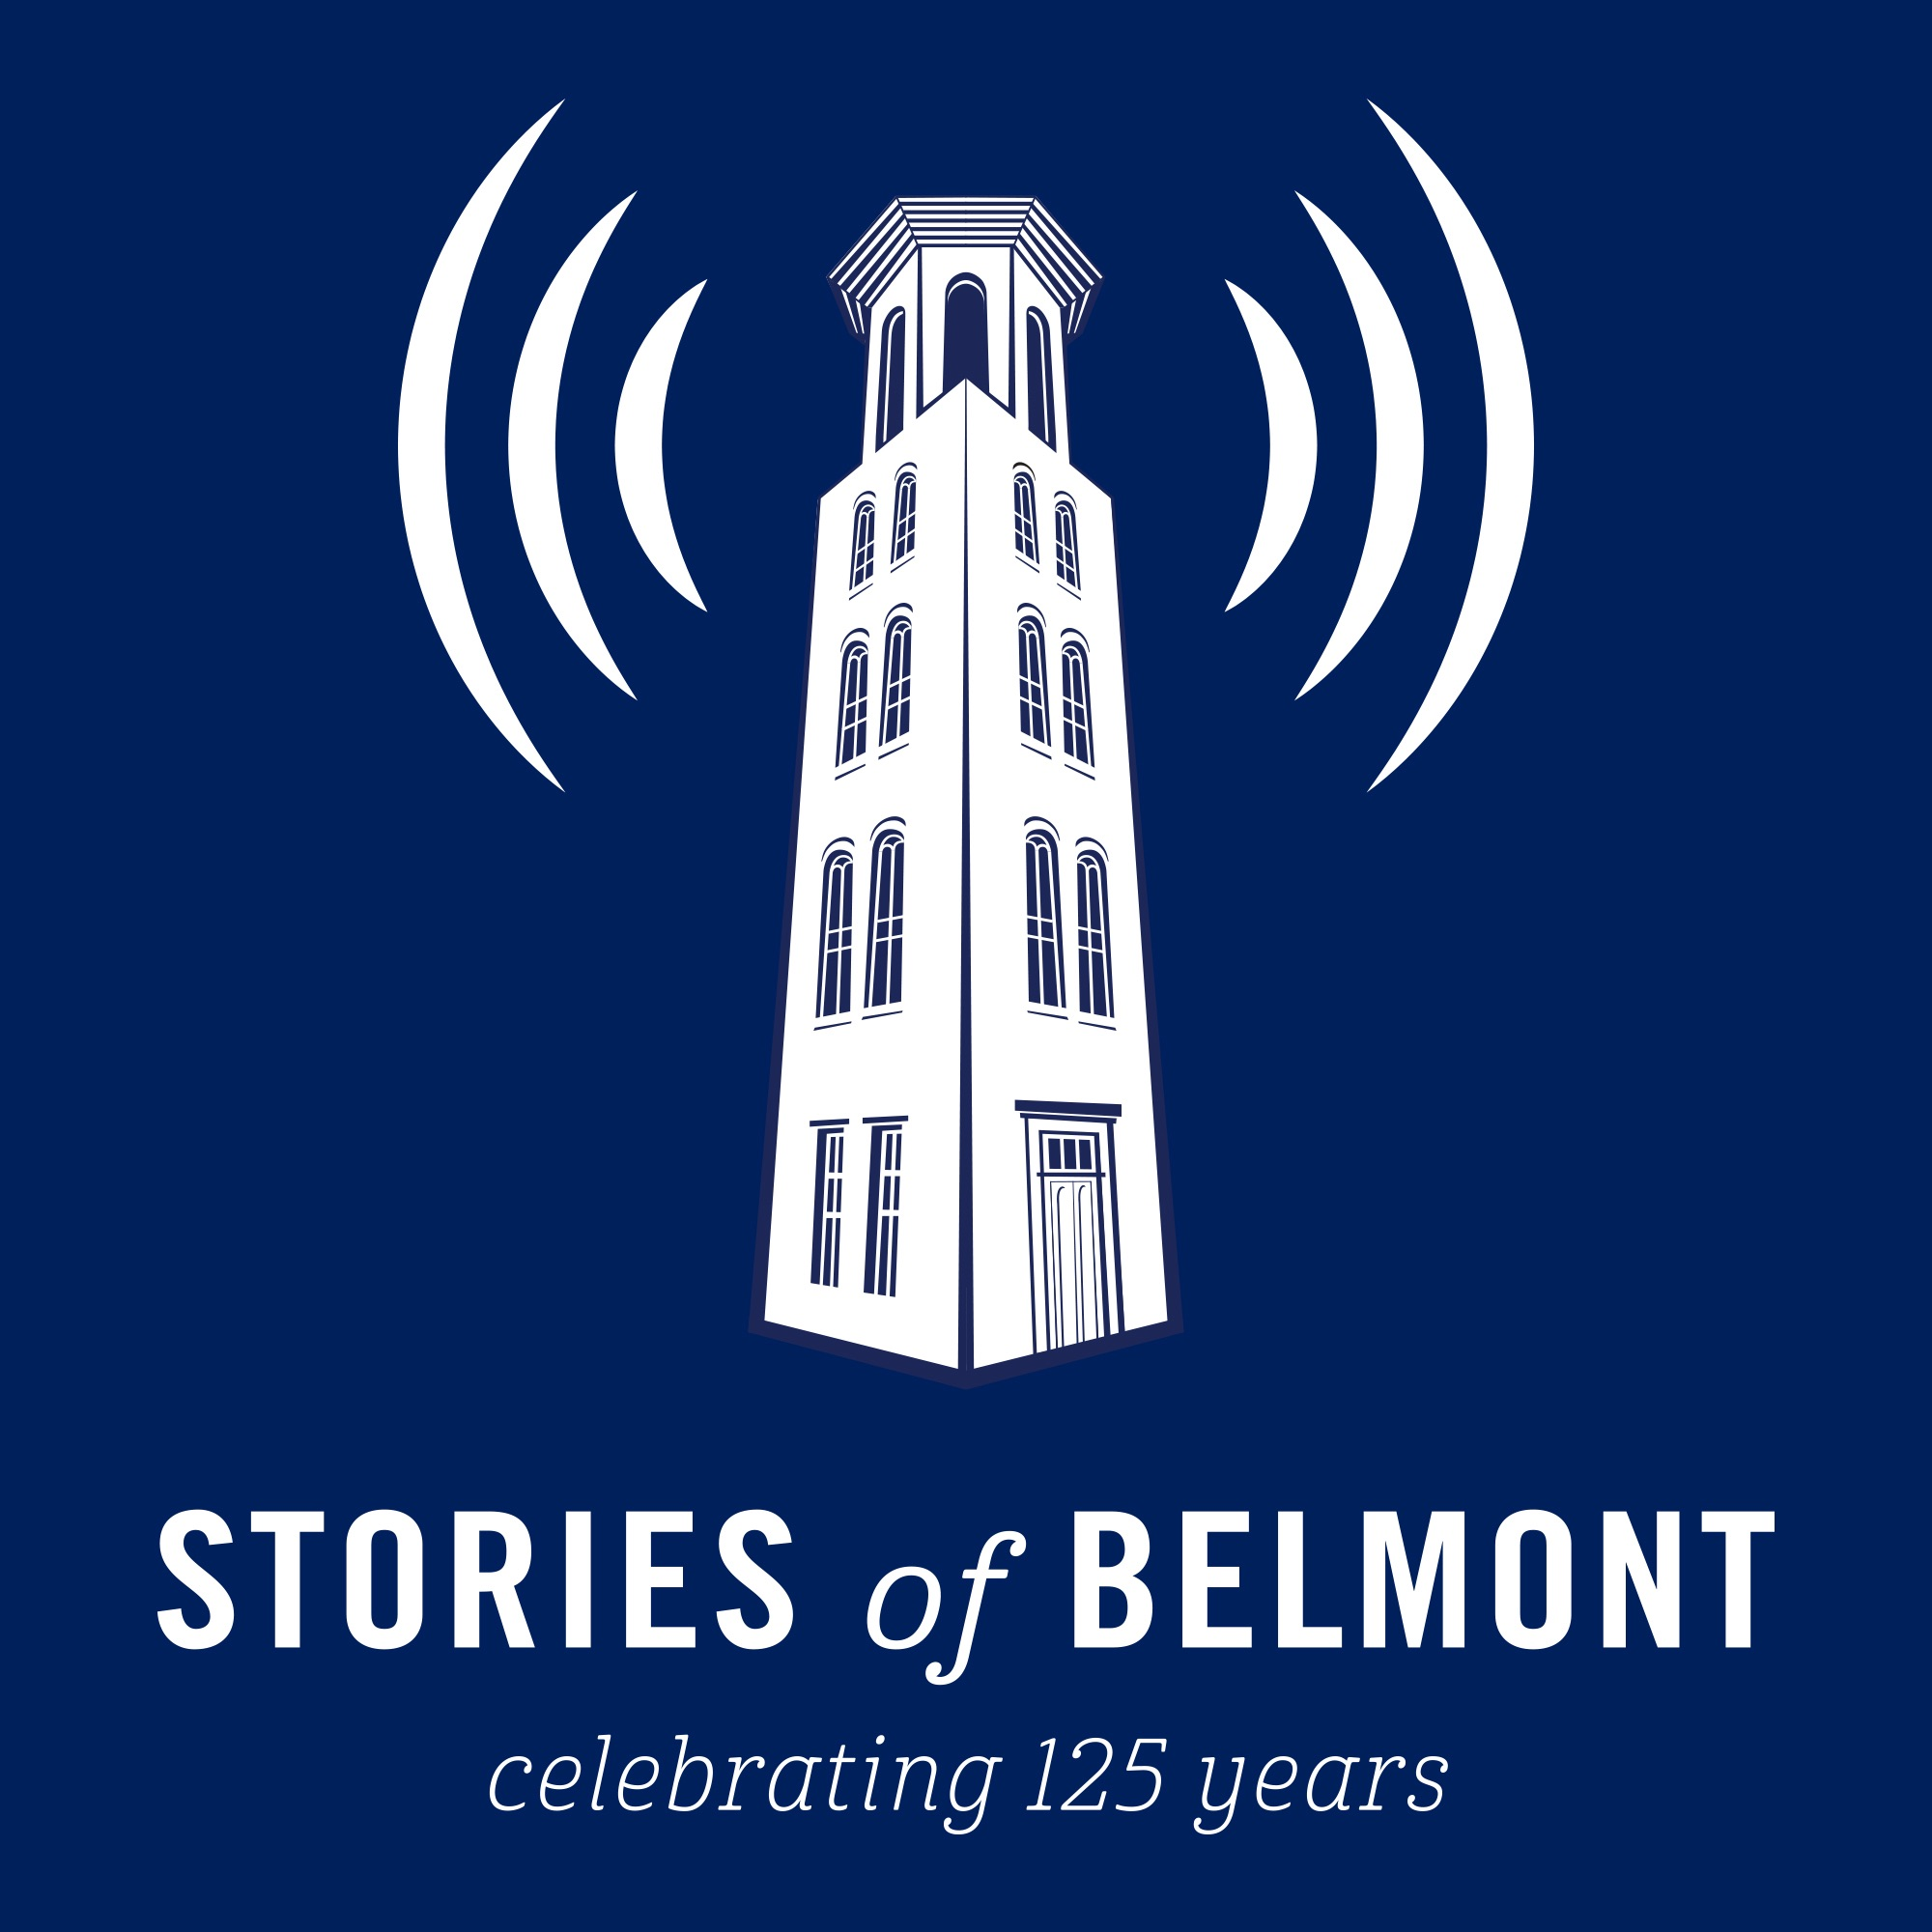 Stories of Belmont